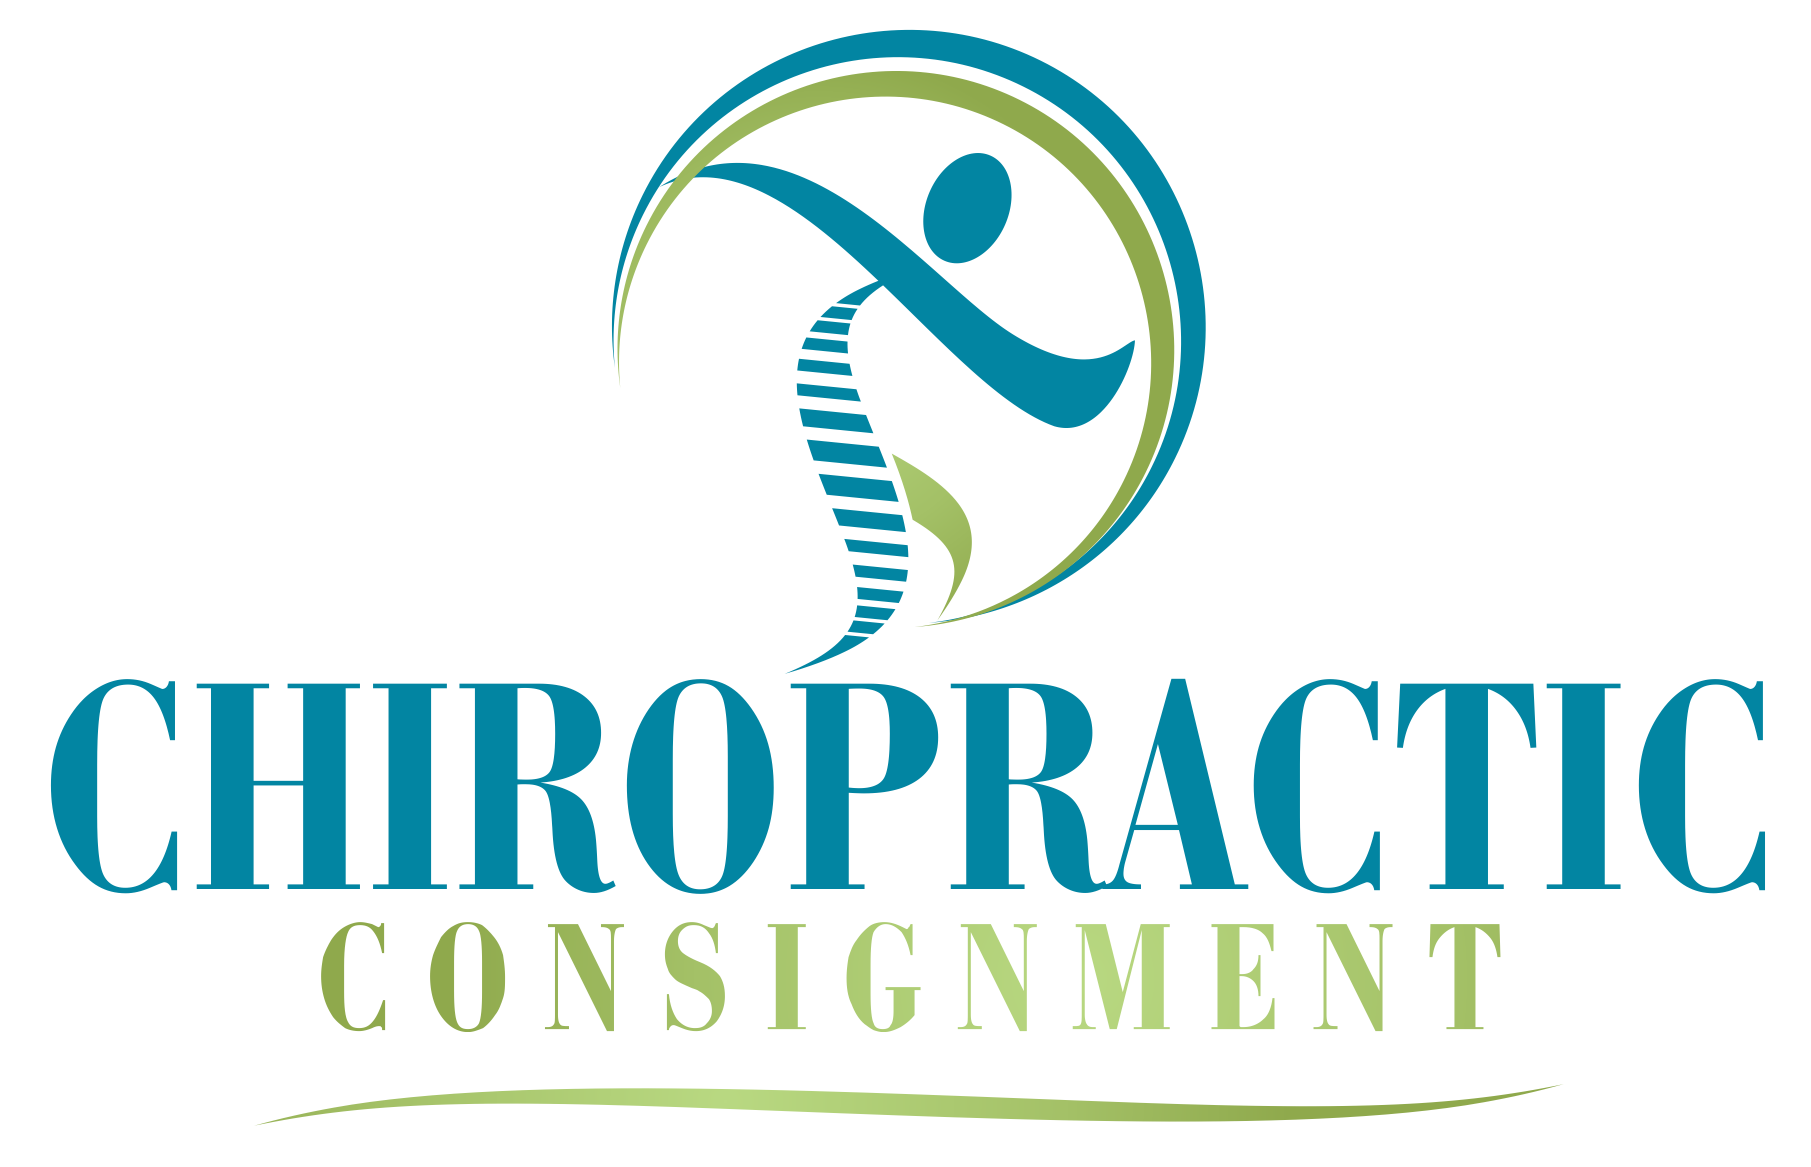 At Chiropractic Consignment, we strive to provide you with quality chiropractic products at the best price possible. If you are looking for chiropractic tables, chiropractic supplies, or chiropractic table parts, we can help.